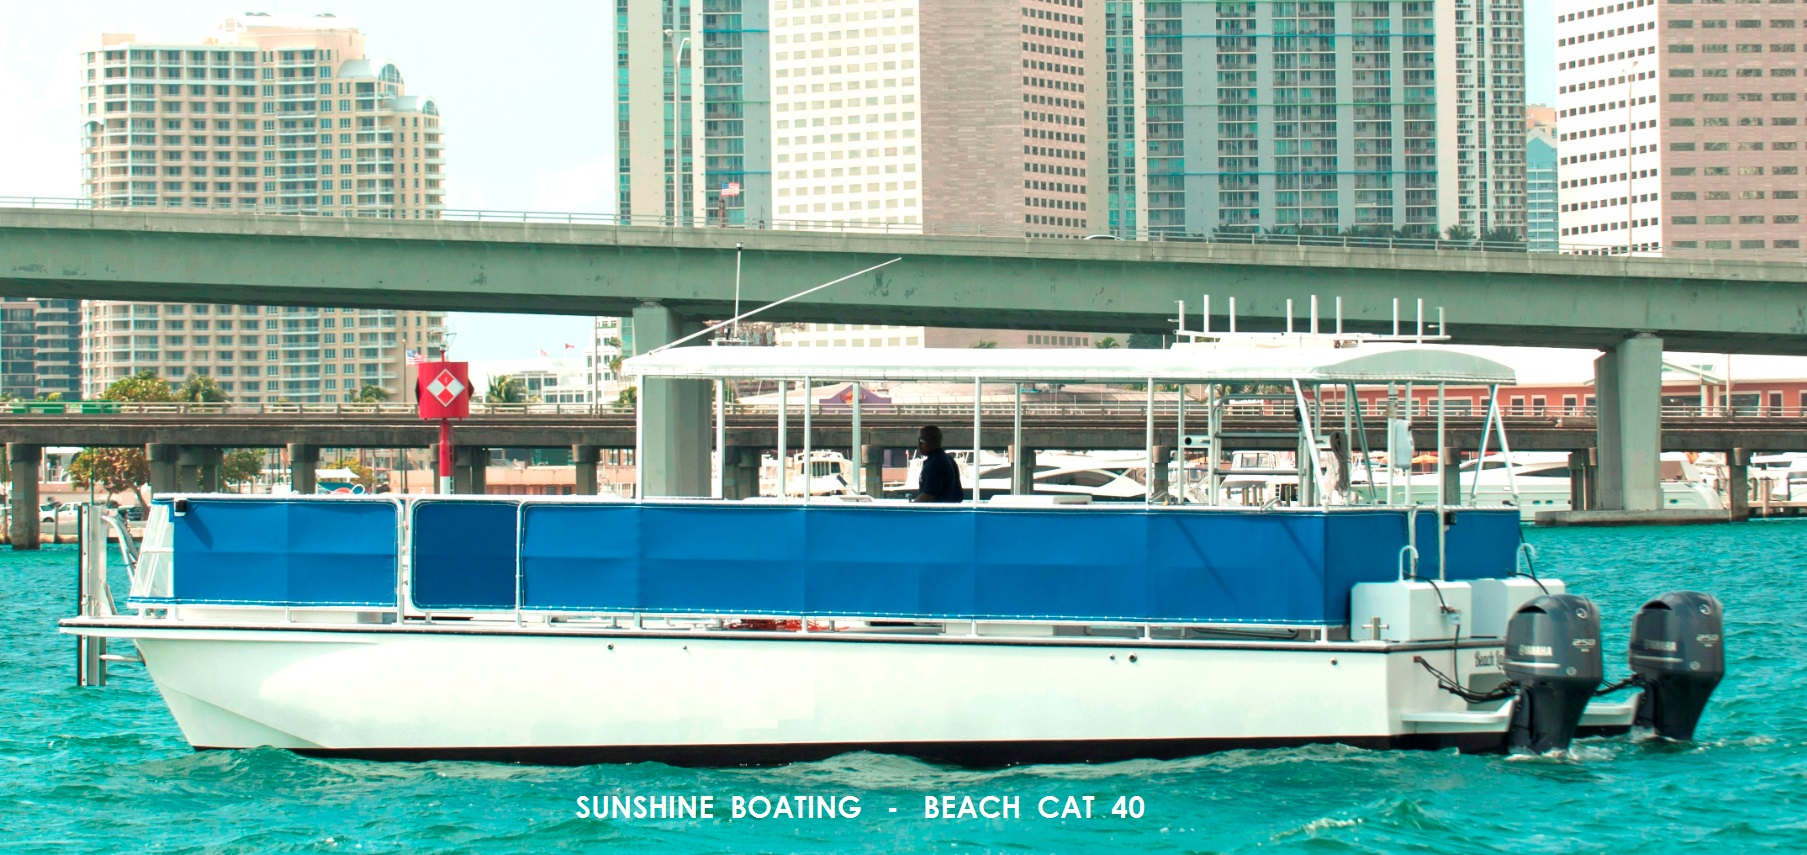 sunshine-boating-beach-cat-40-d